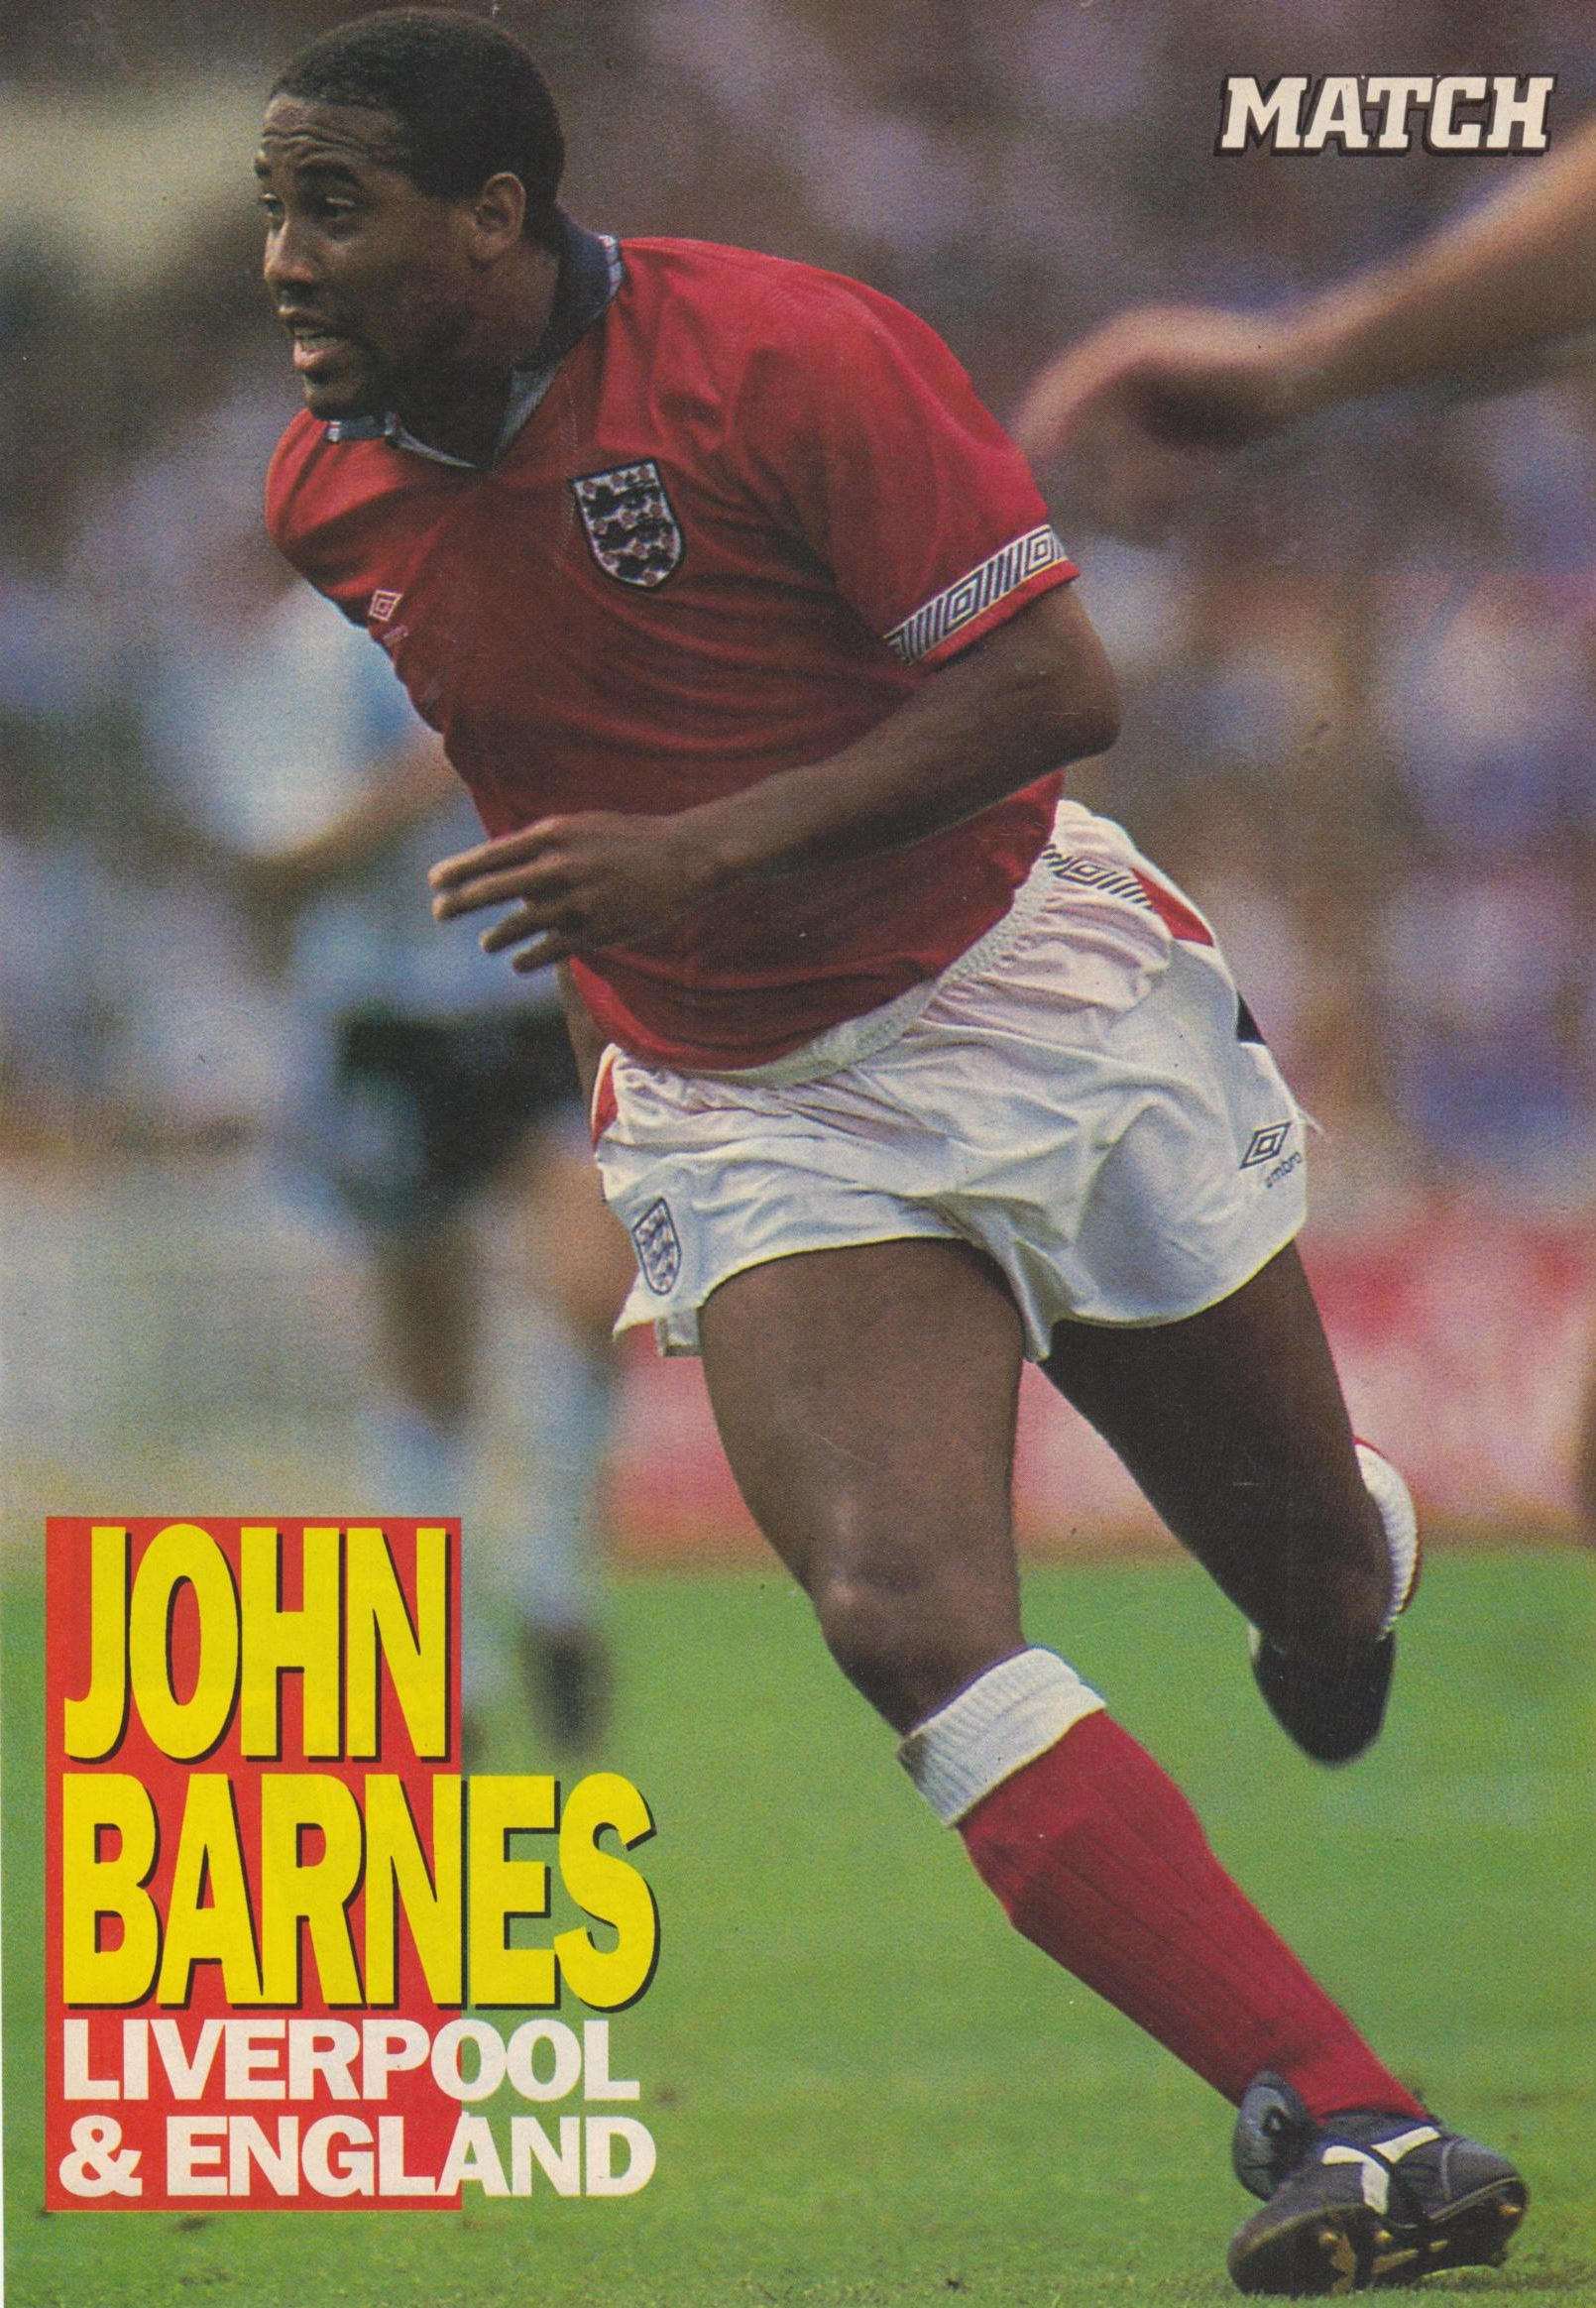 Match poster of Barnes in England's red